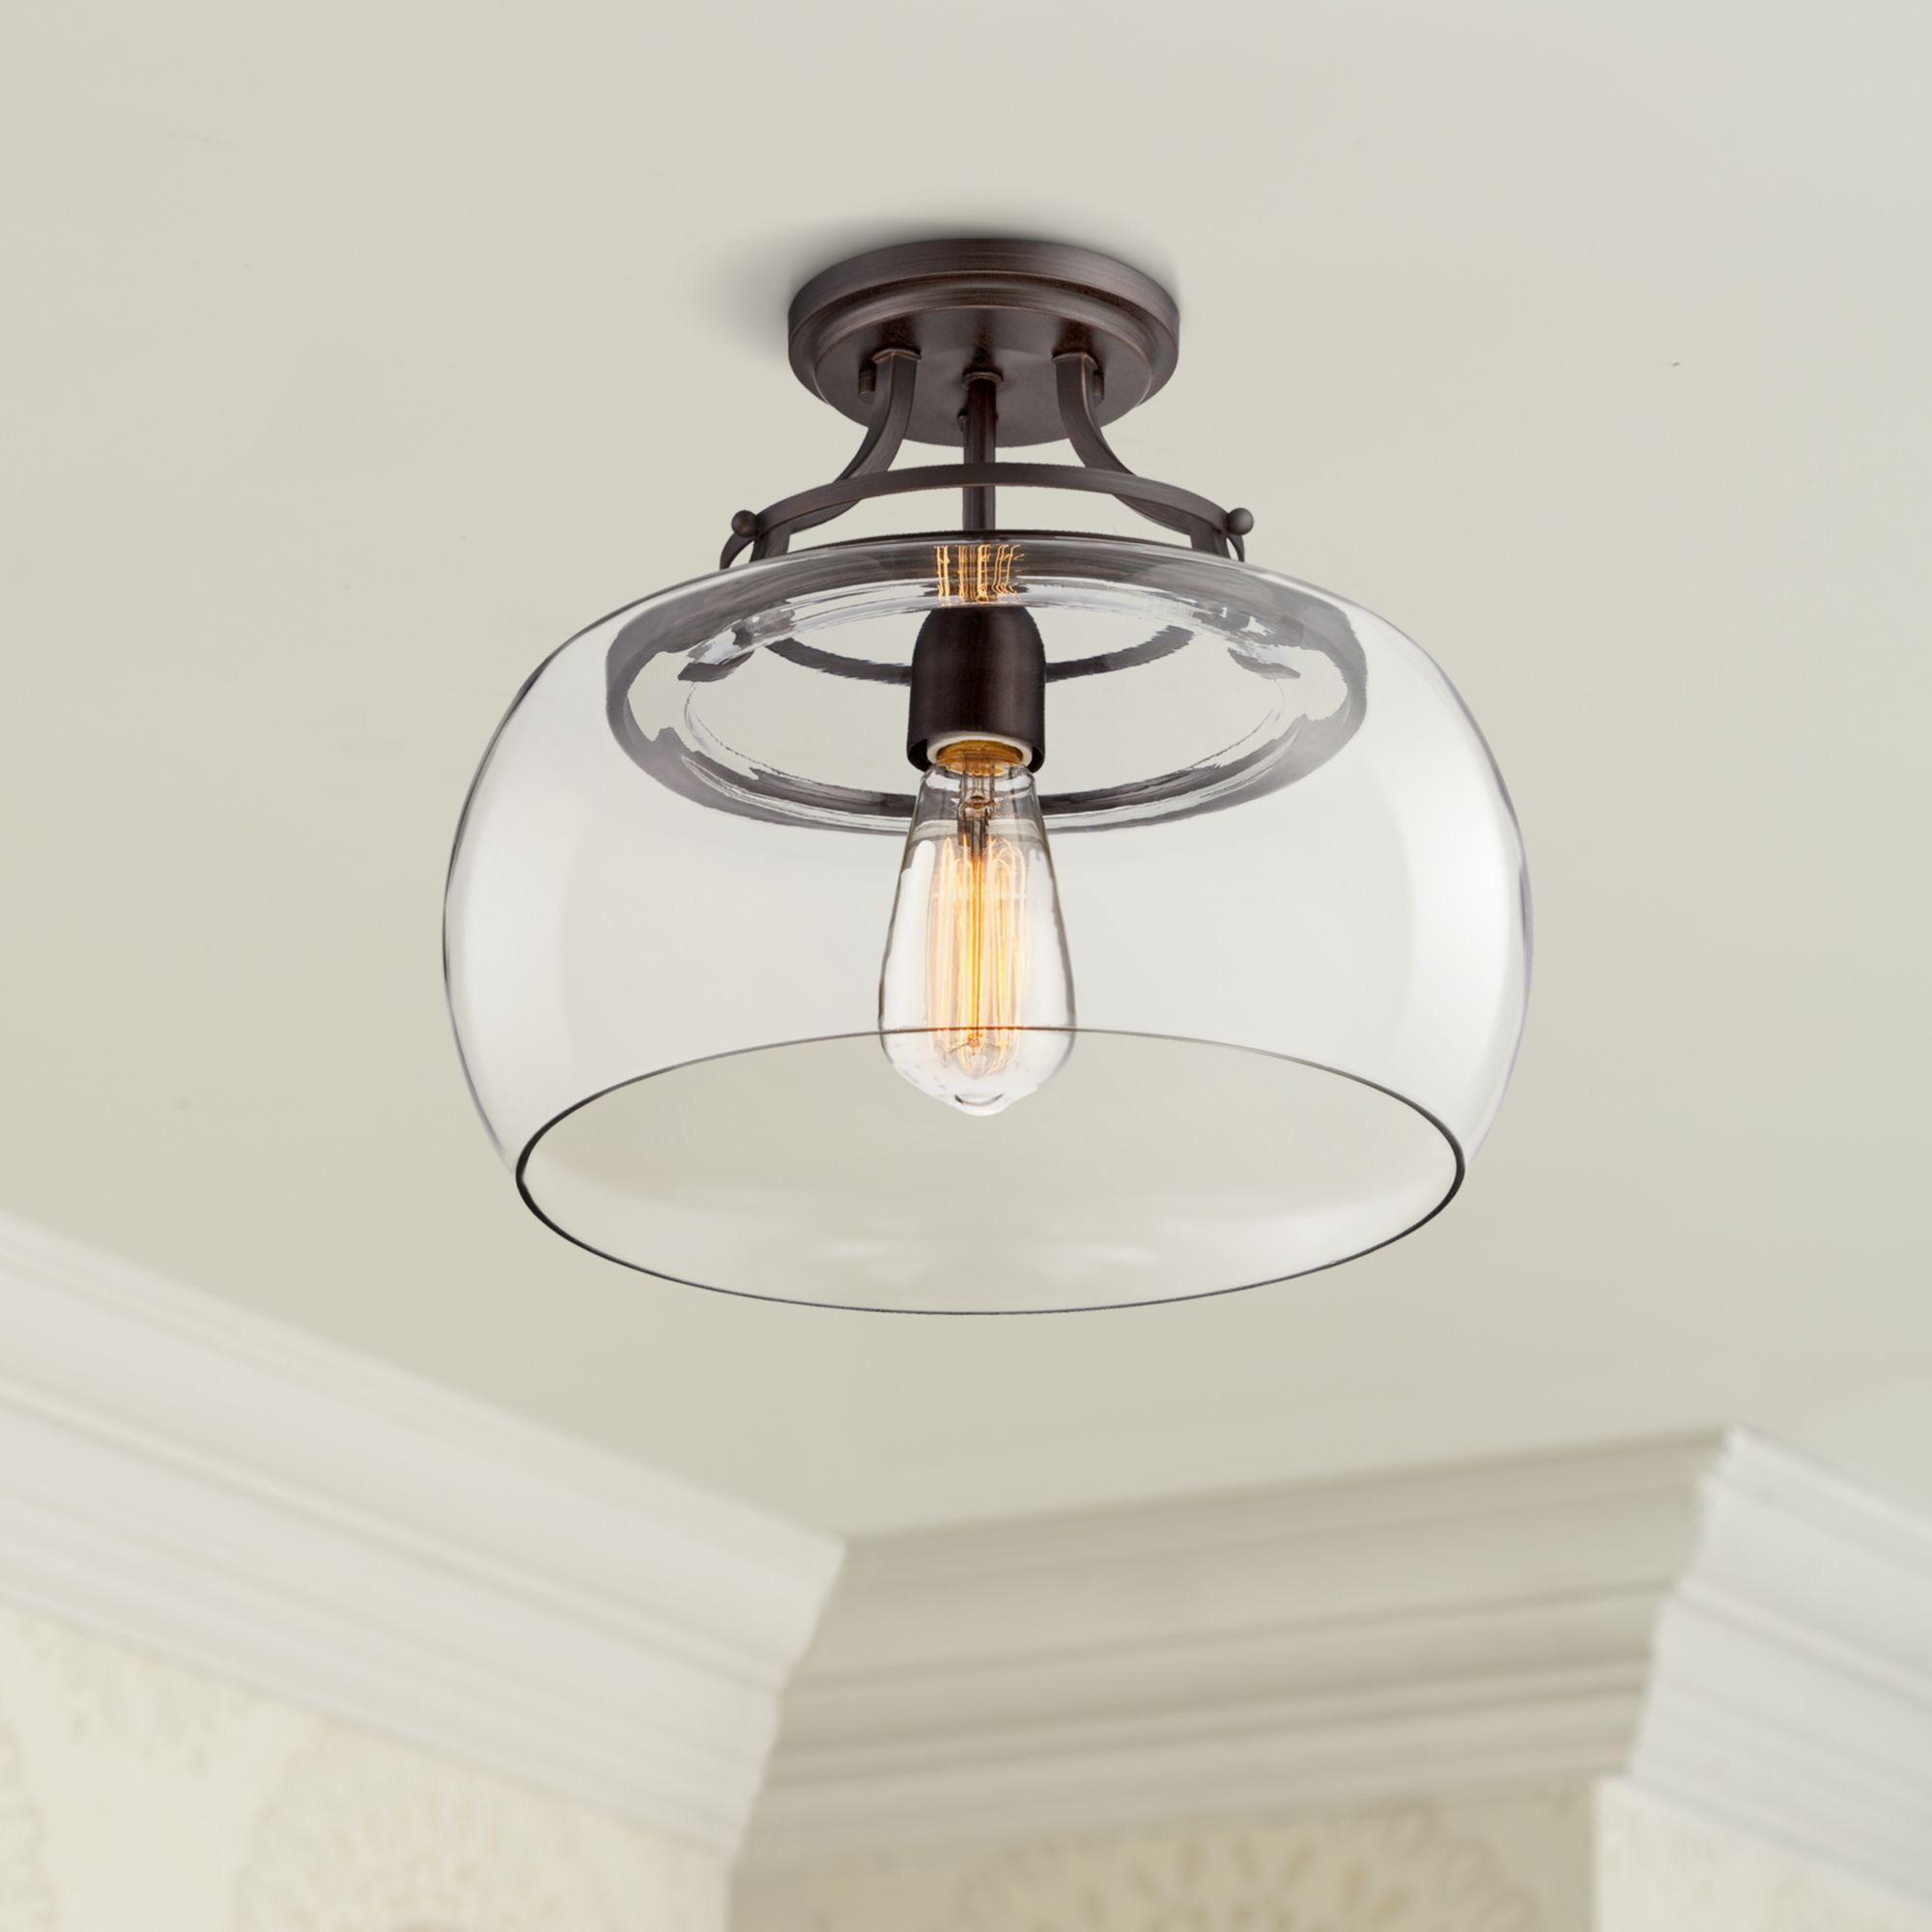 Franklin Iron Works Farmhouse Semi Flush Mount Ceiling Light